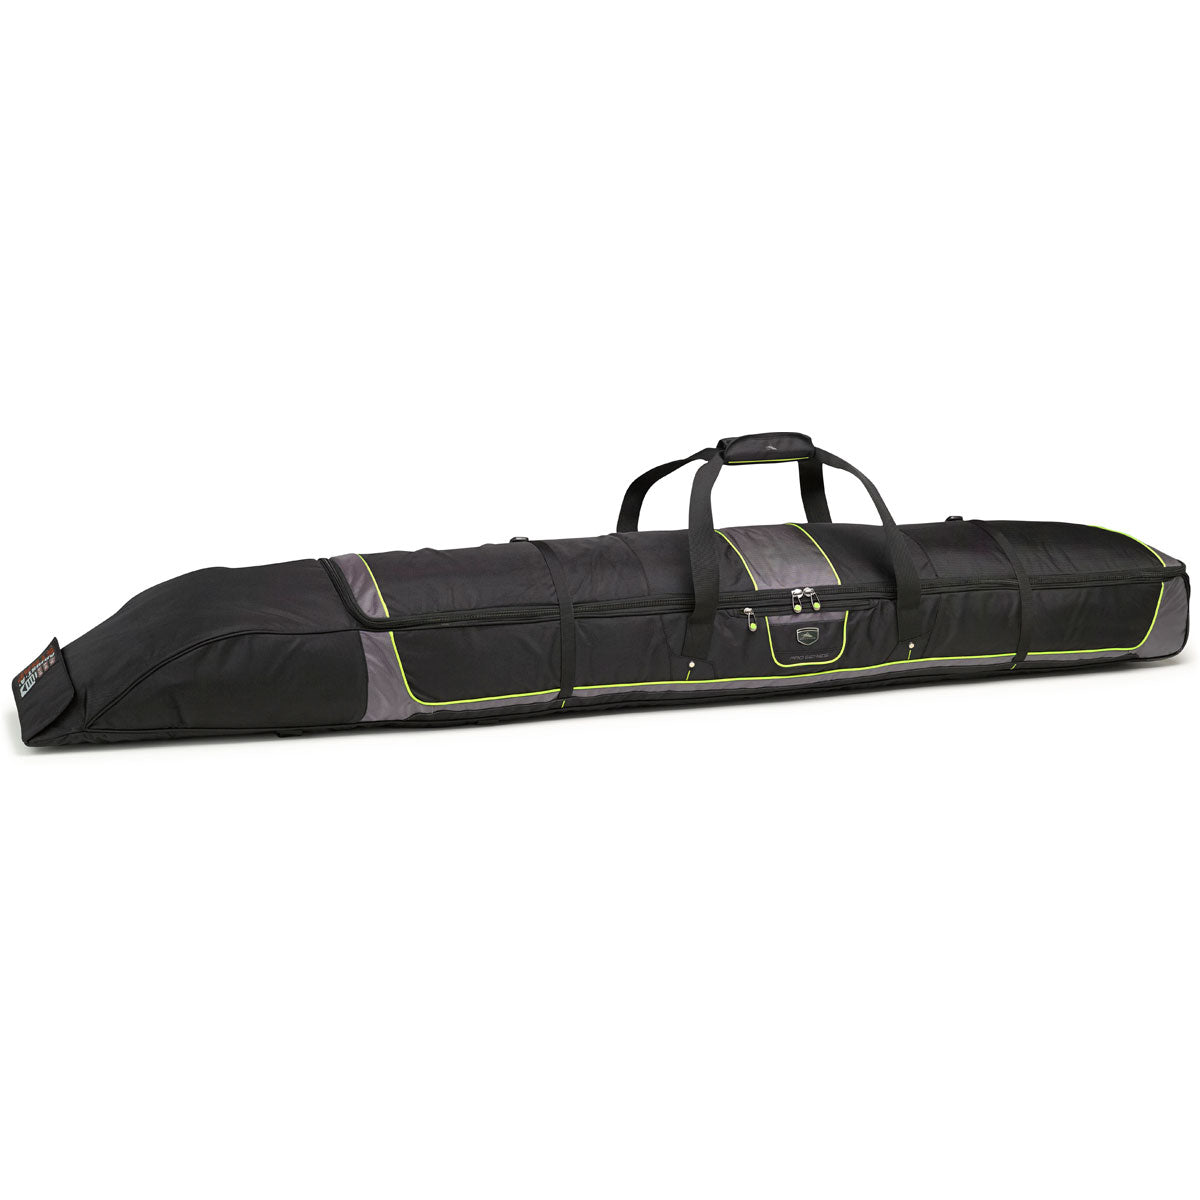 High Sierra Pro Series Double Adjustable Ski Bag